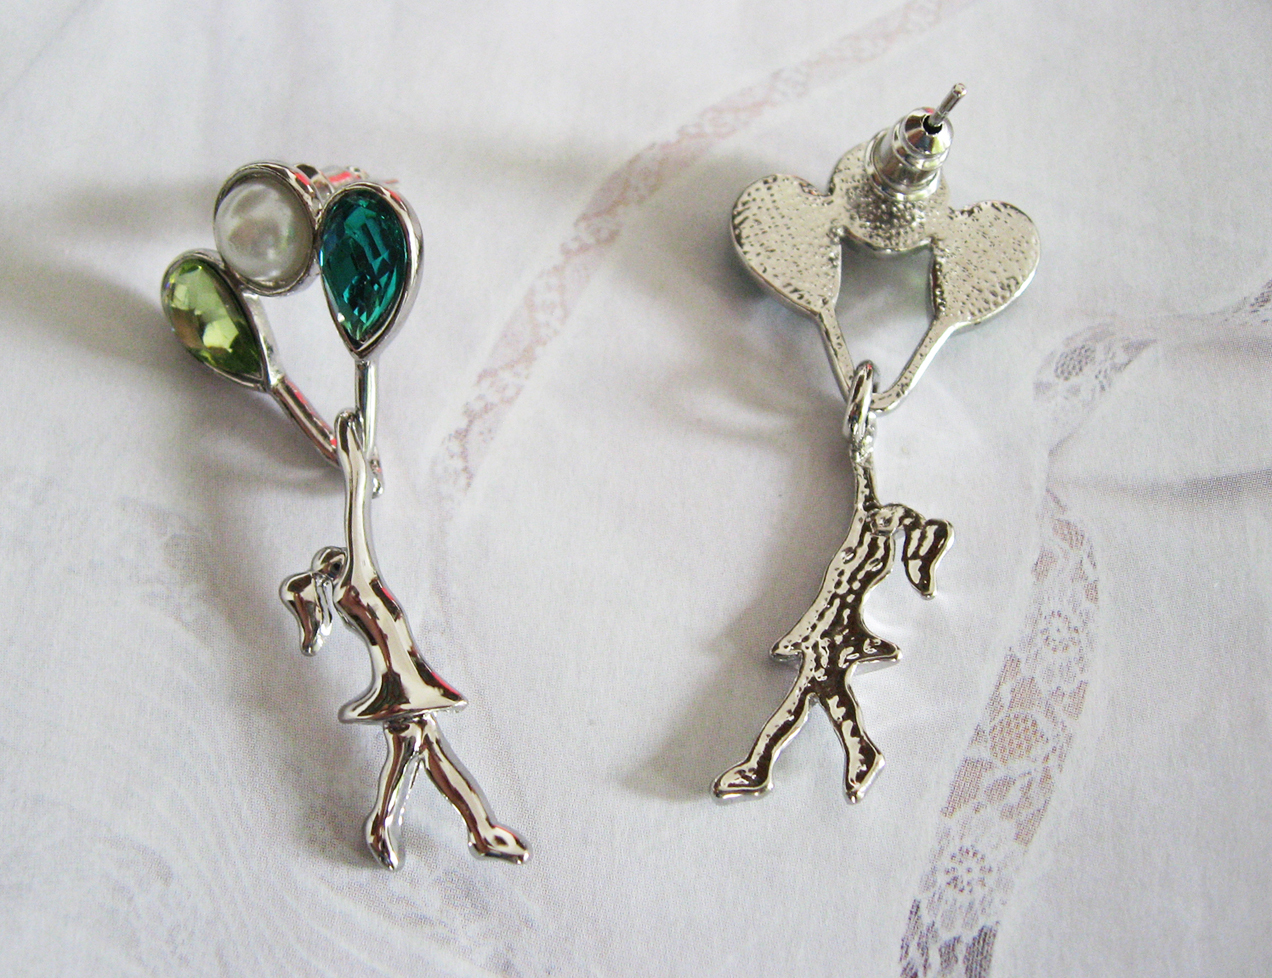 Flying With Green Balloons. Silver Plated Studs Earrings. Da